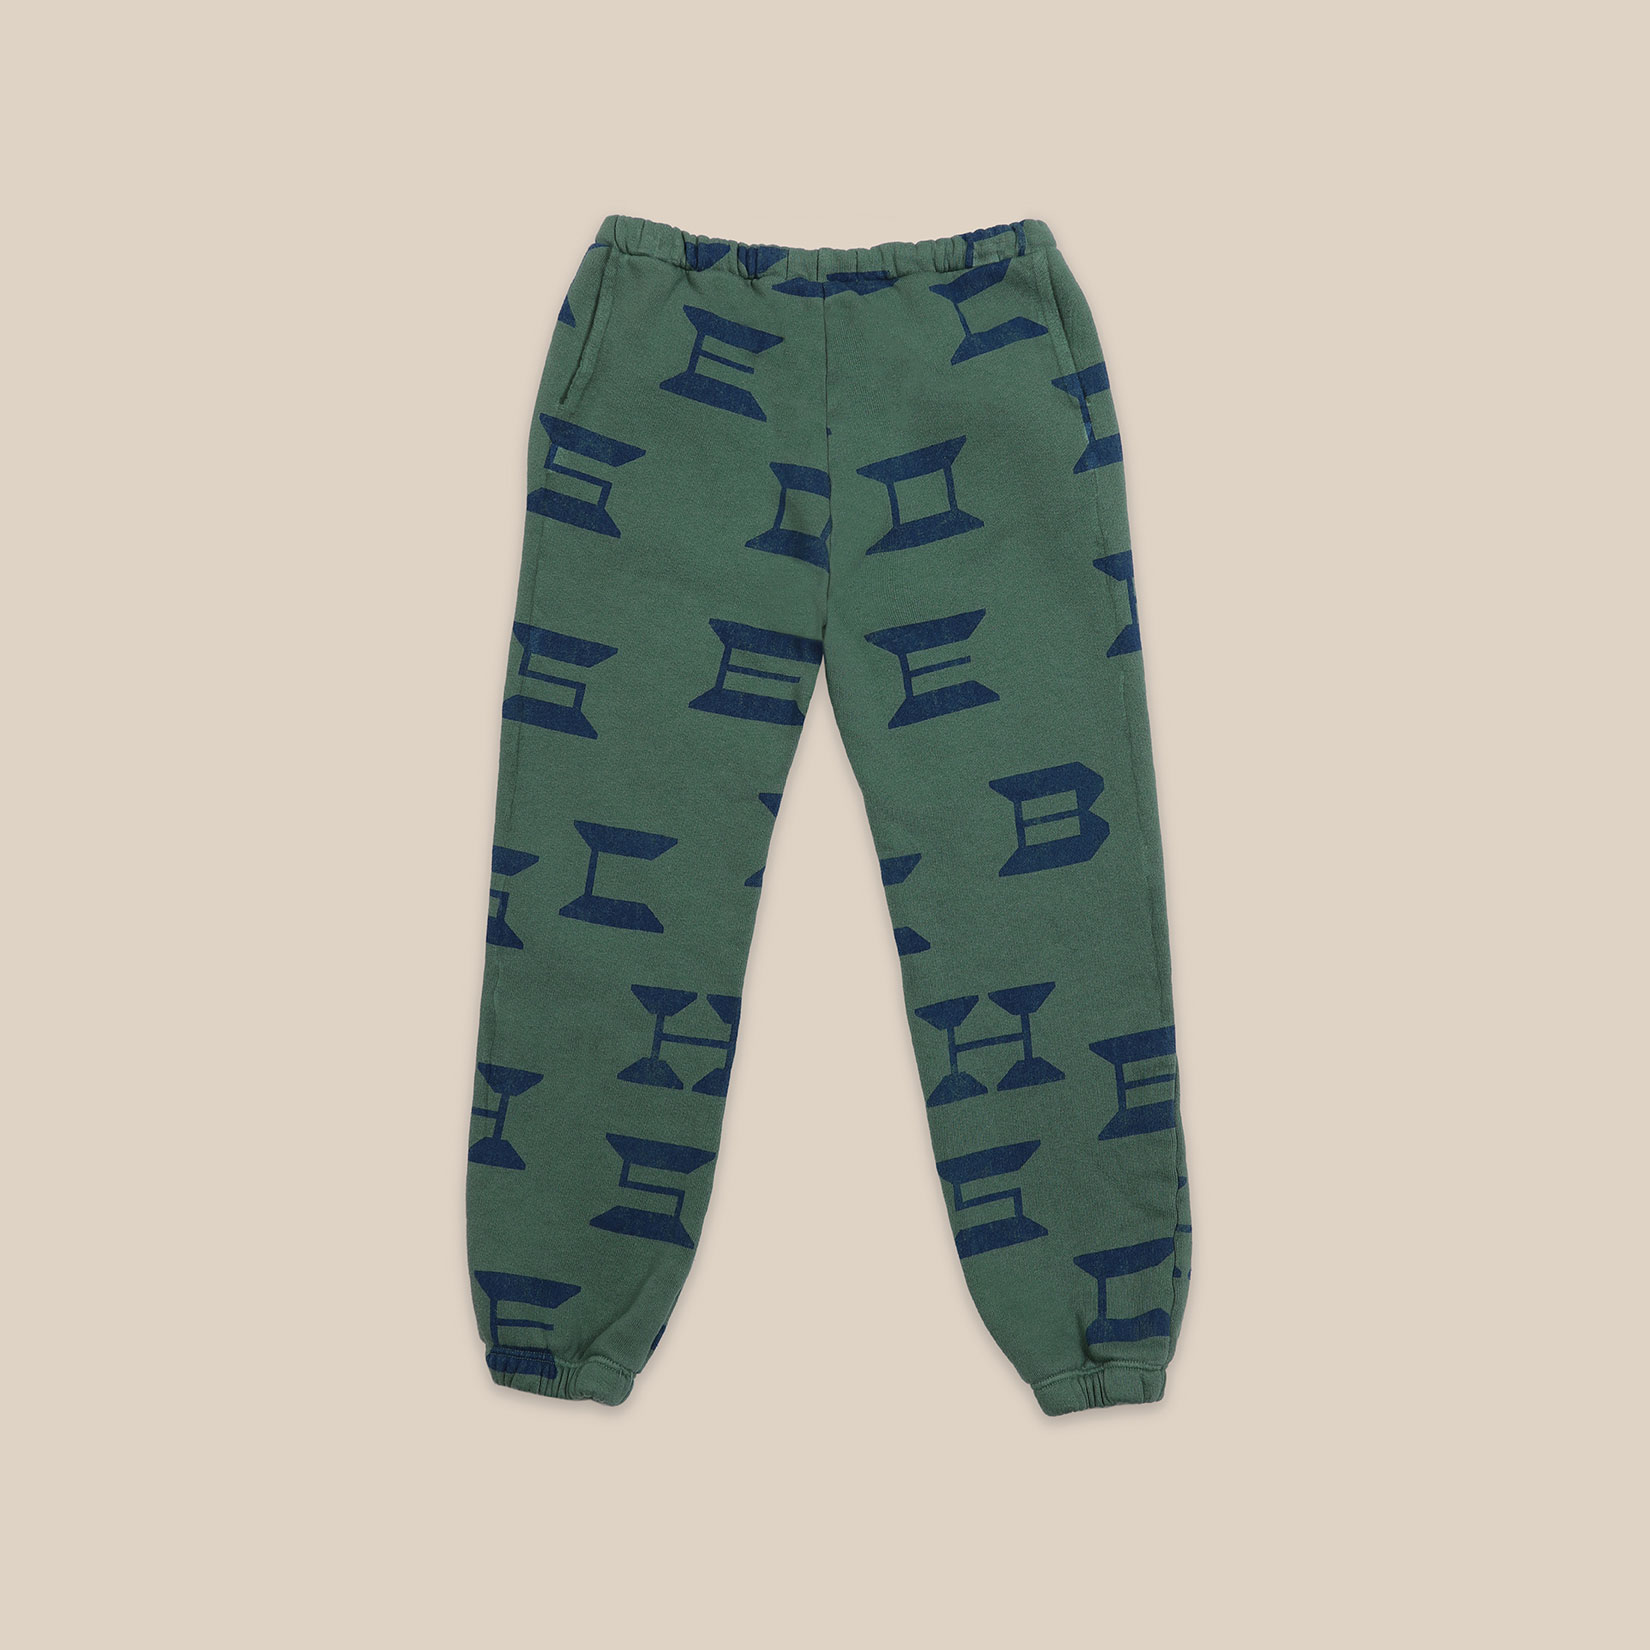 Bobo Choses - Bobo Choses All Over Jogging Pants